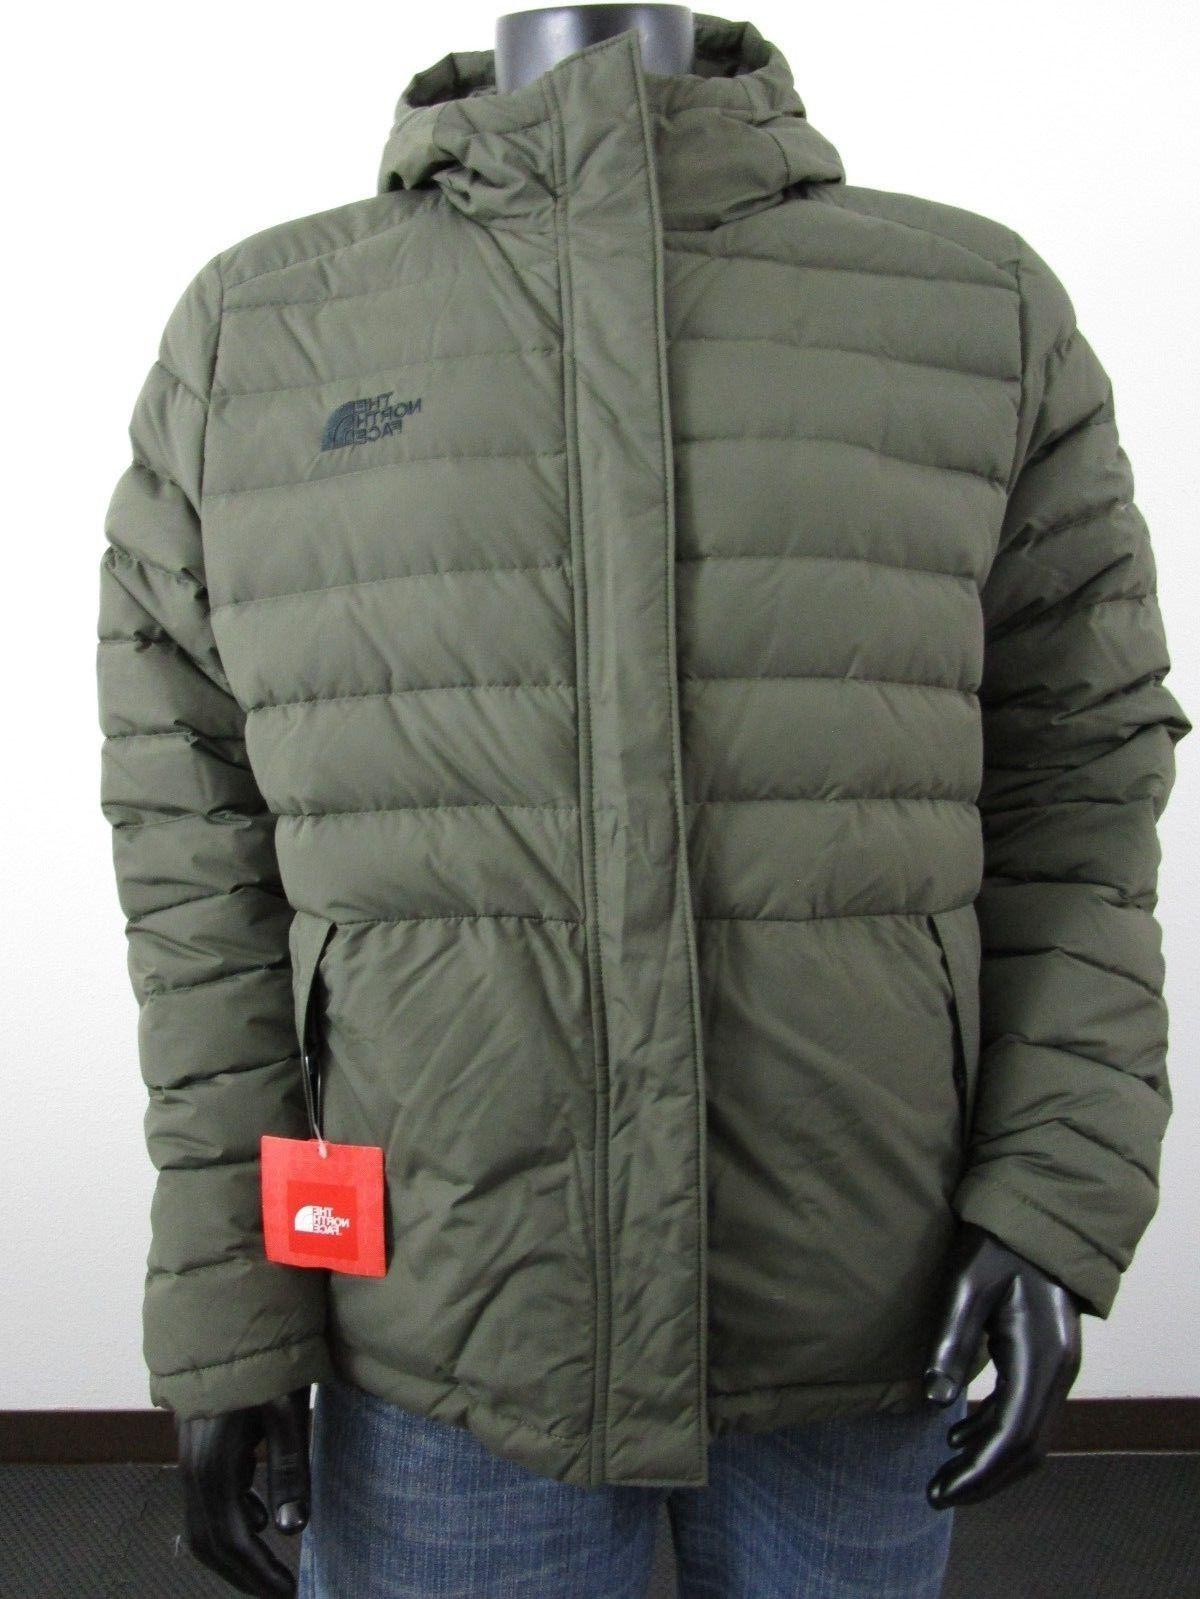 nwt mens tnf beacon 550 down insulated